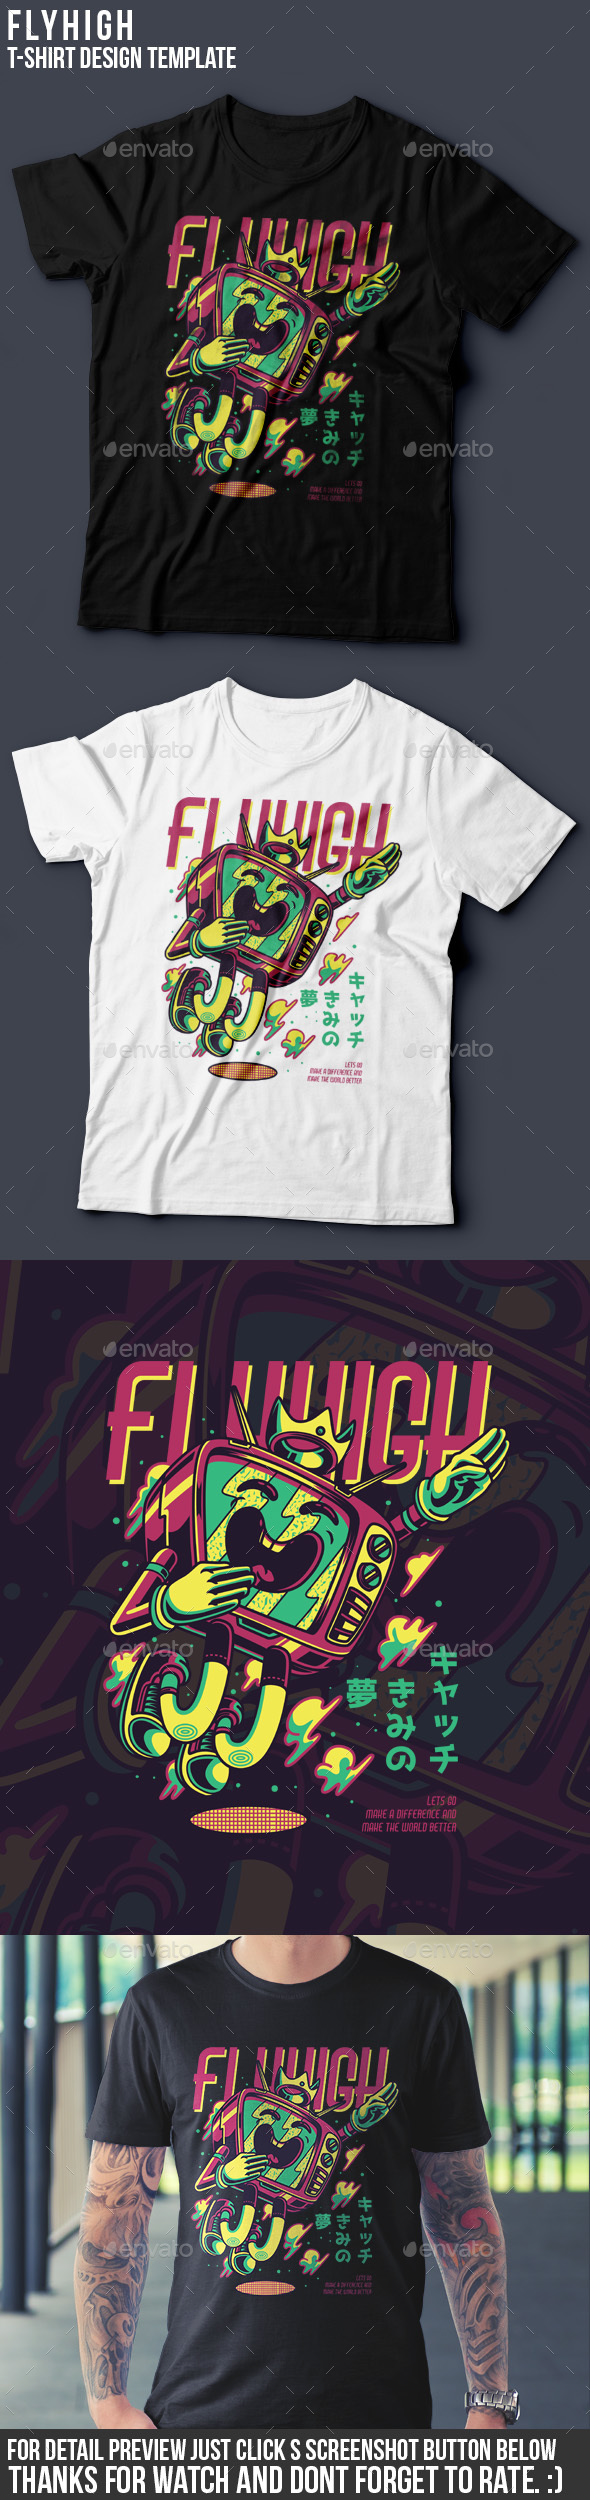 Flyhigh T-Shirt Design - Funny Designs